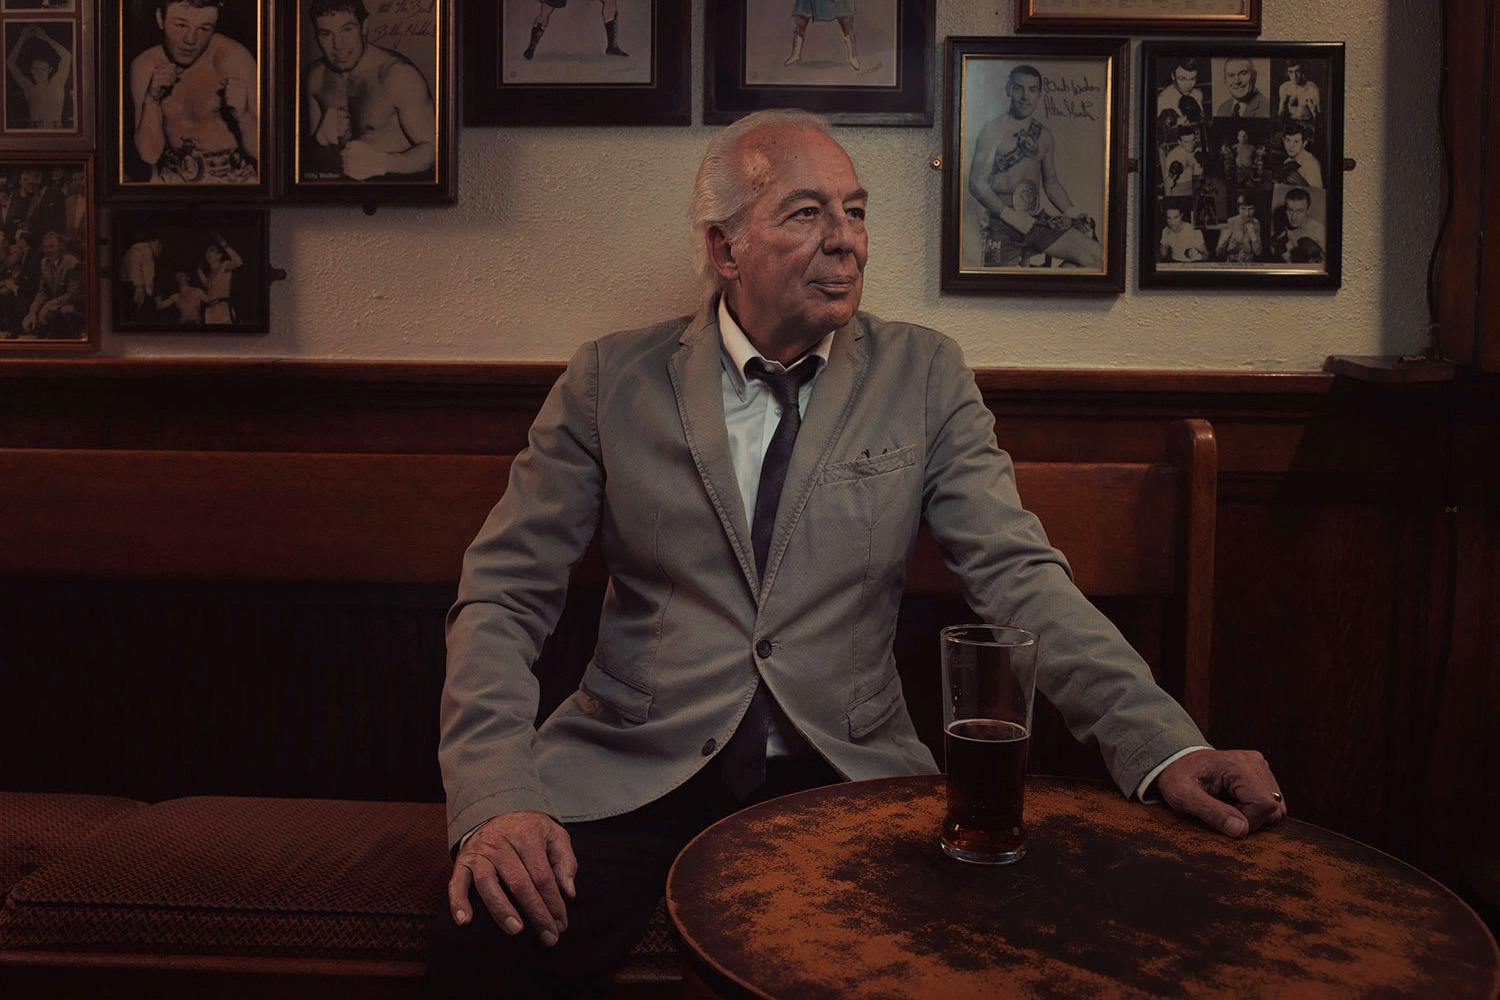 Man in jacket, pub table. Image from Last of the Old Crooners, Palm Tree pub by Tom Oldham